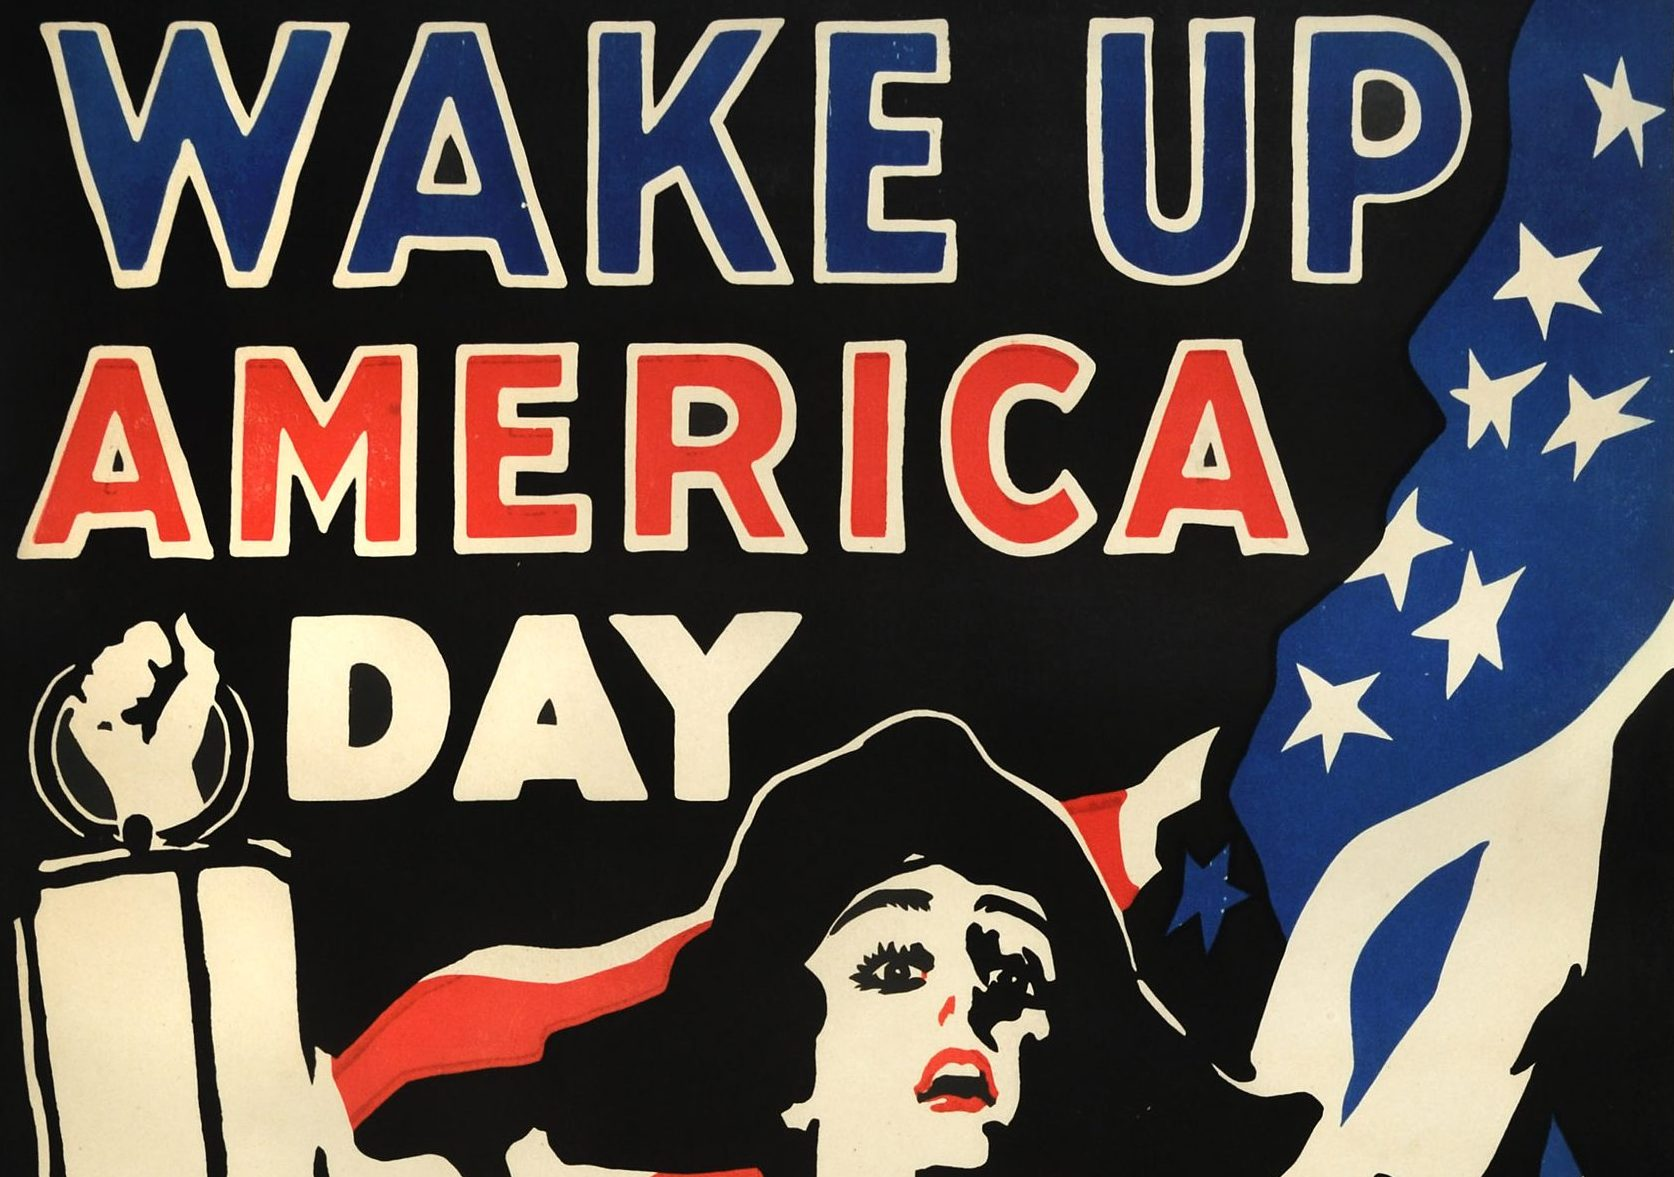 Wake Up America Day, James Montgomery Flagg, [New York], 1917